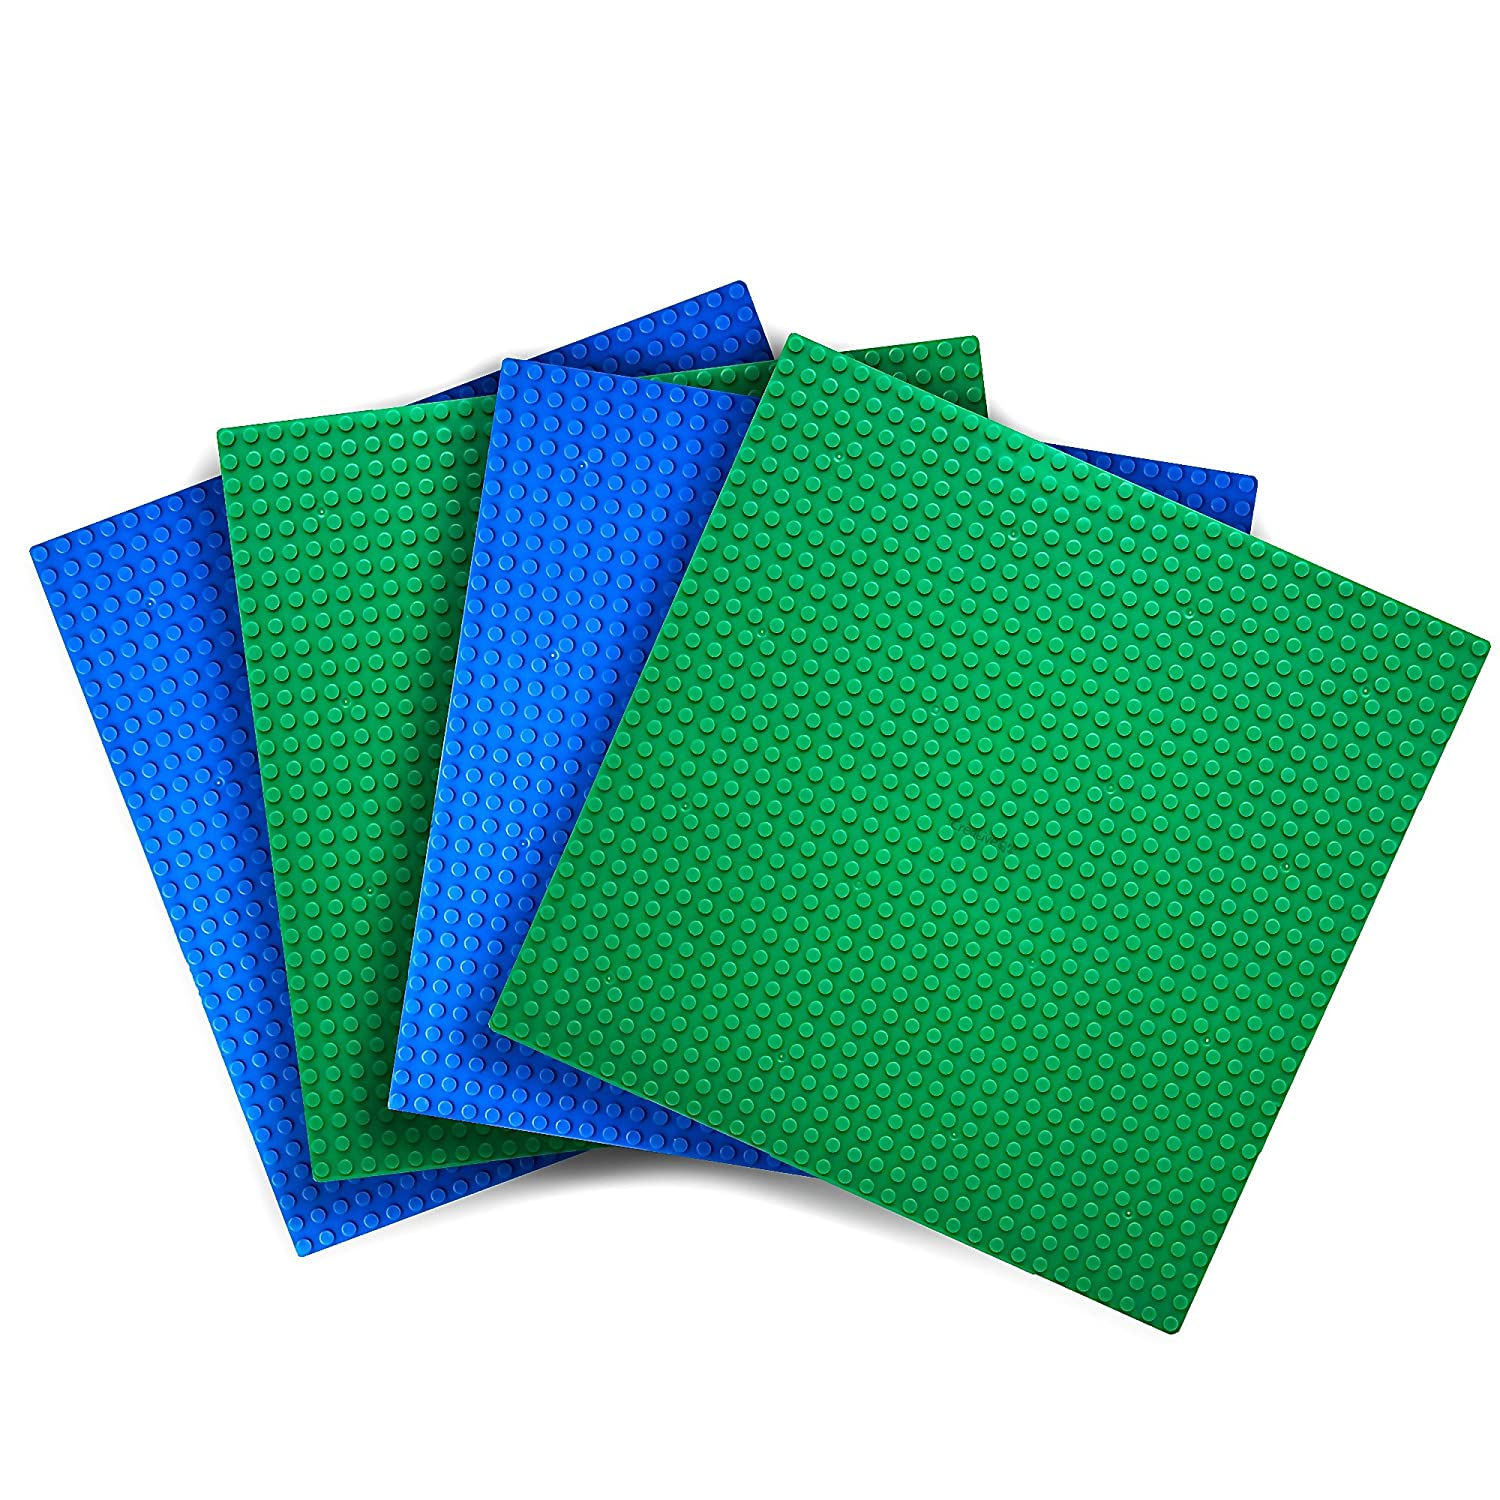 "Variety Pack Classic Baseplates (Set of 4 - 10"" X 10"") Compatible With All Major Brands of Building Blocks -- Green and Blue -- By Creative QT Review"